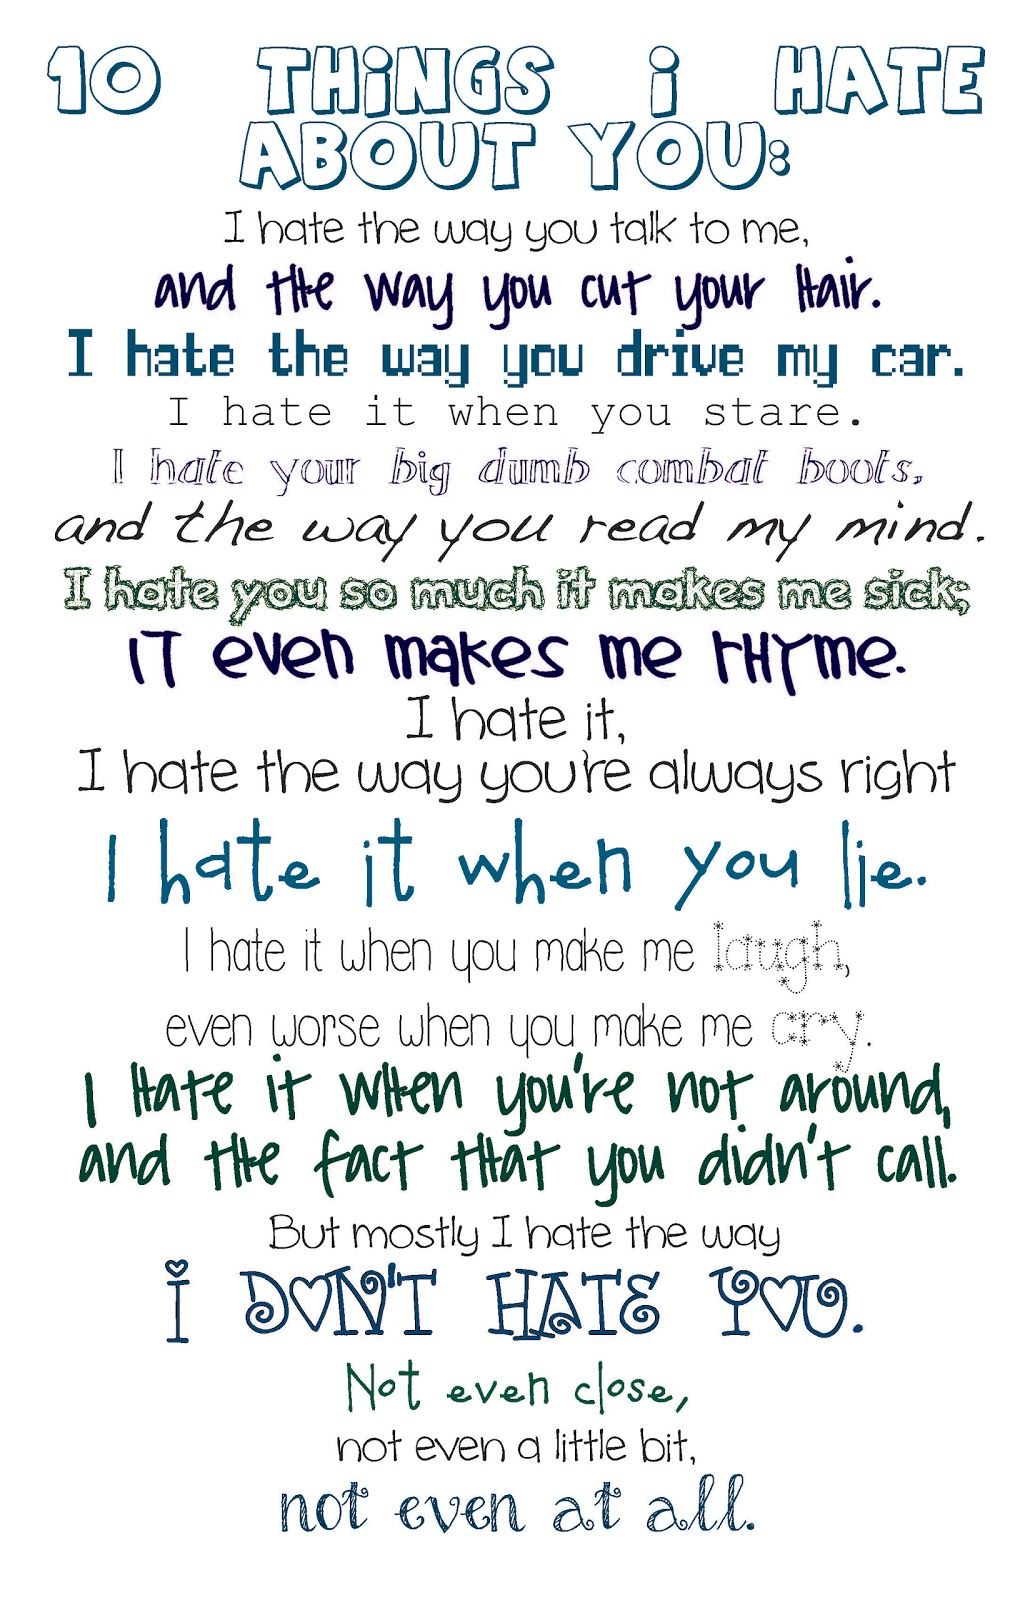 10 things i hate about you essay